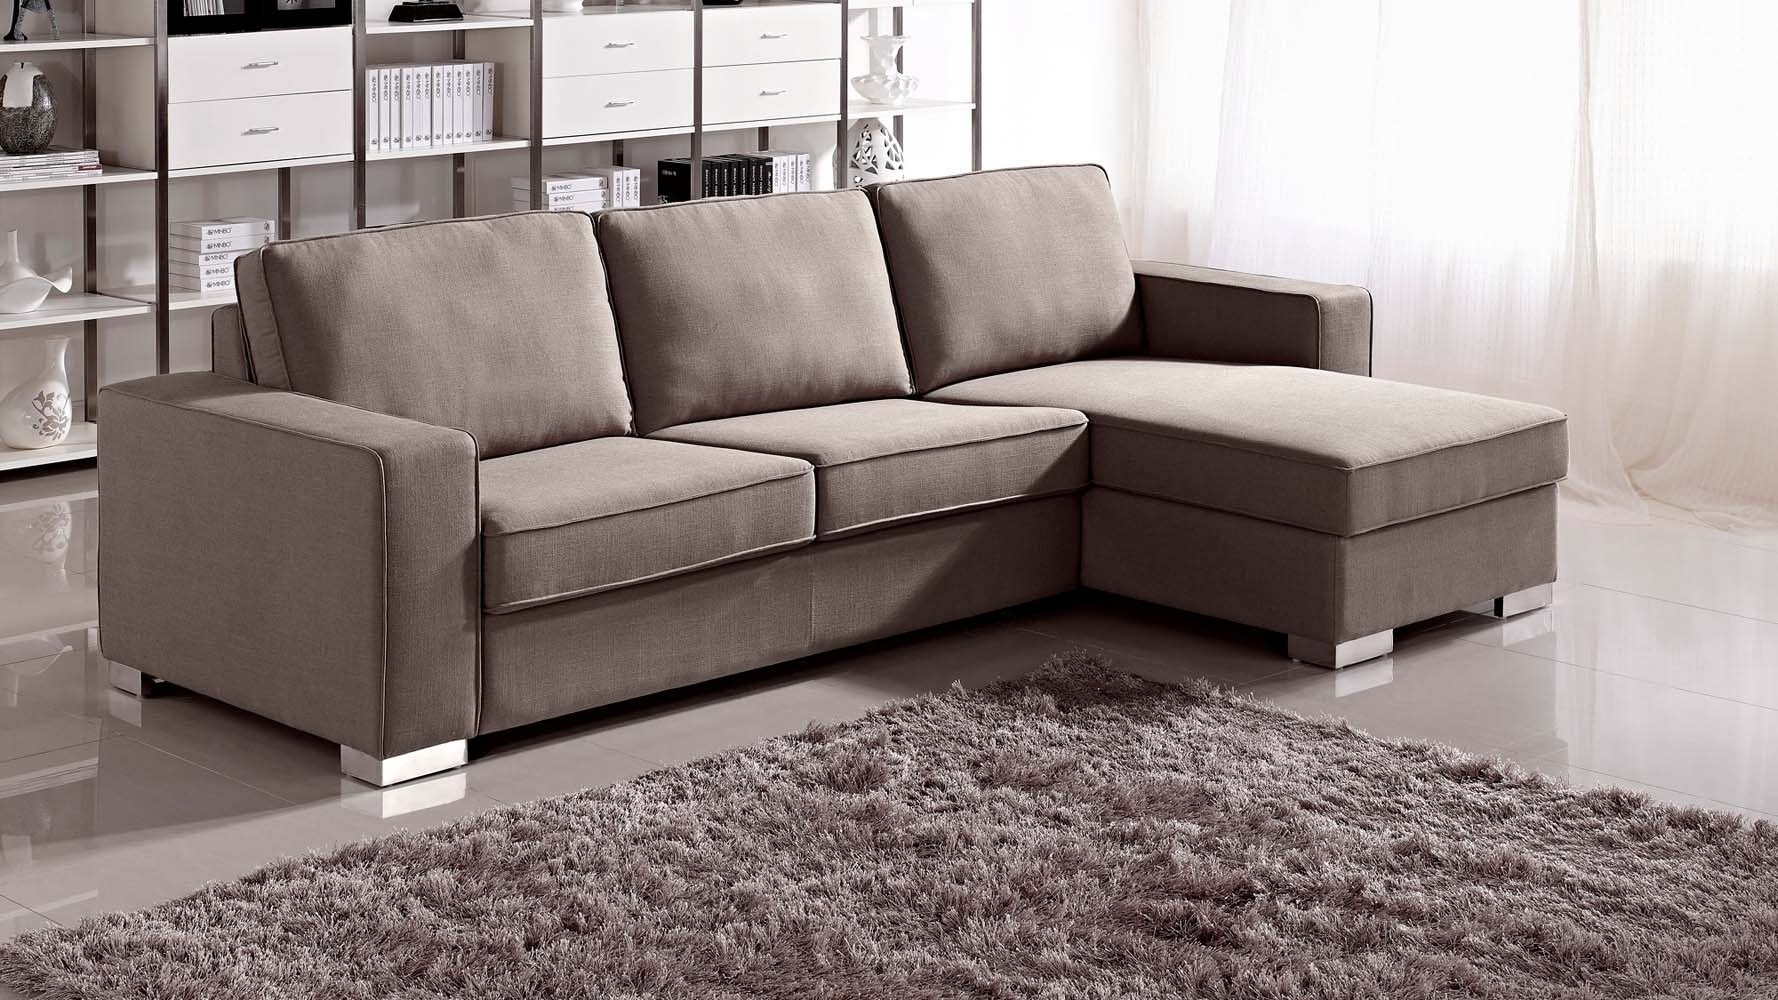 Brilliant Sectional Sofas Cincinnati – Buildsimplehome With Regard To Best And Newest Cincinnati Sectional Sofas (View 5 of 20)